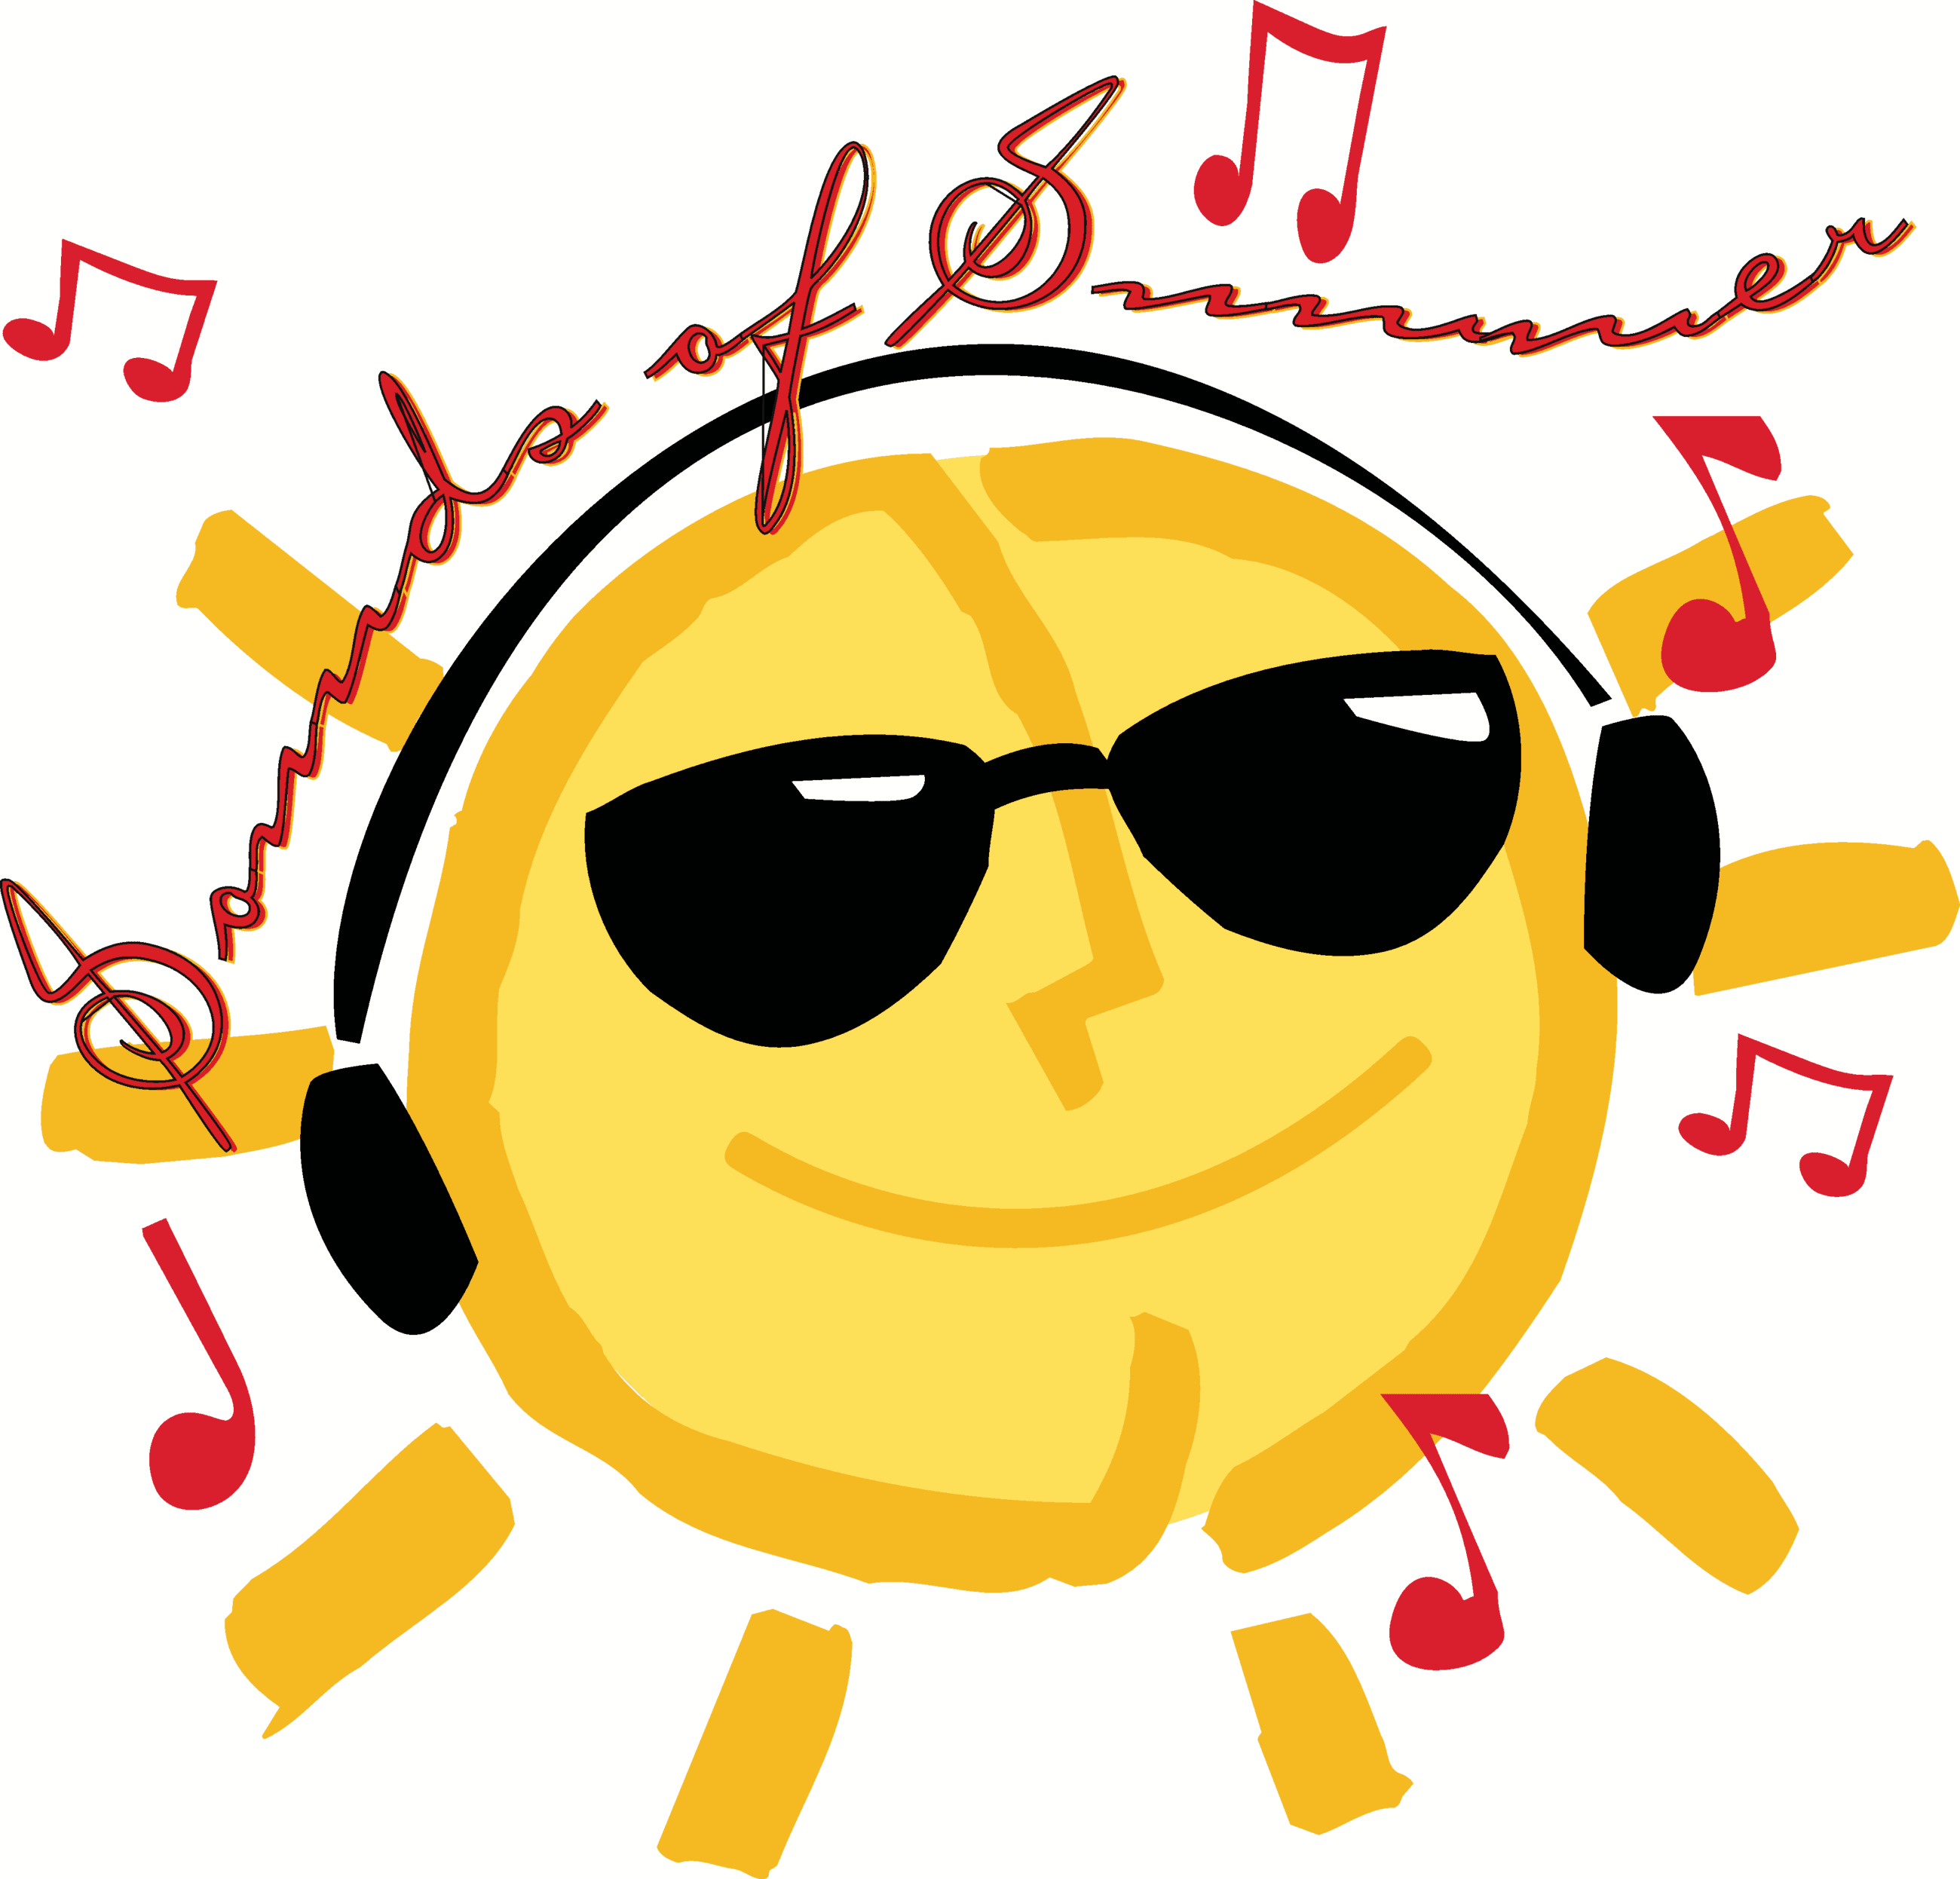 summerfun logo - smiling sun with sunglasses and headphones